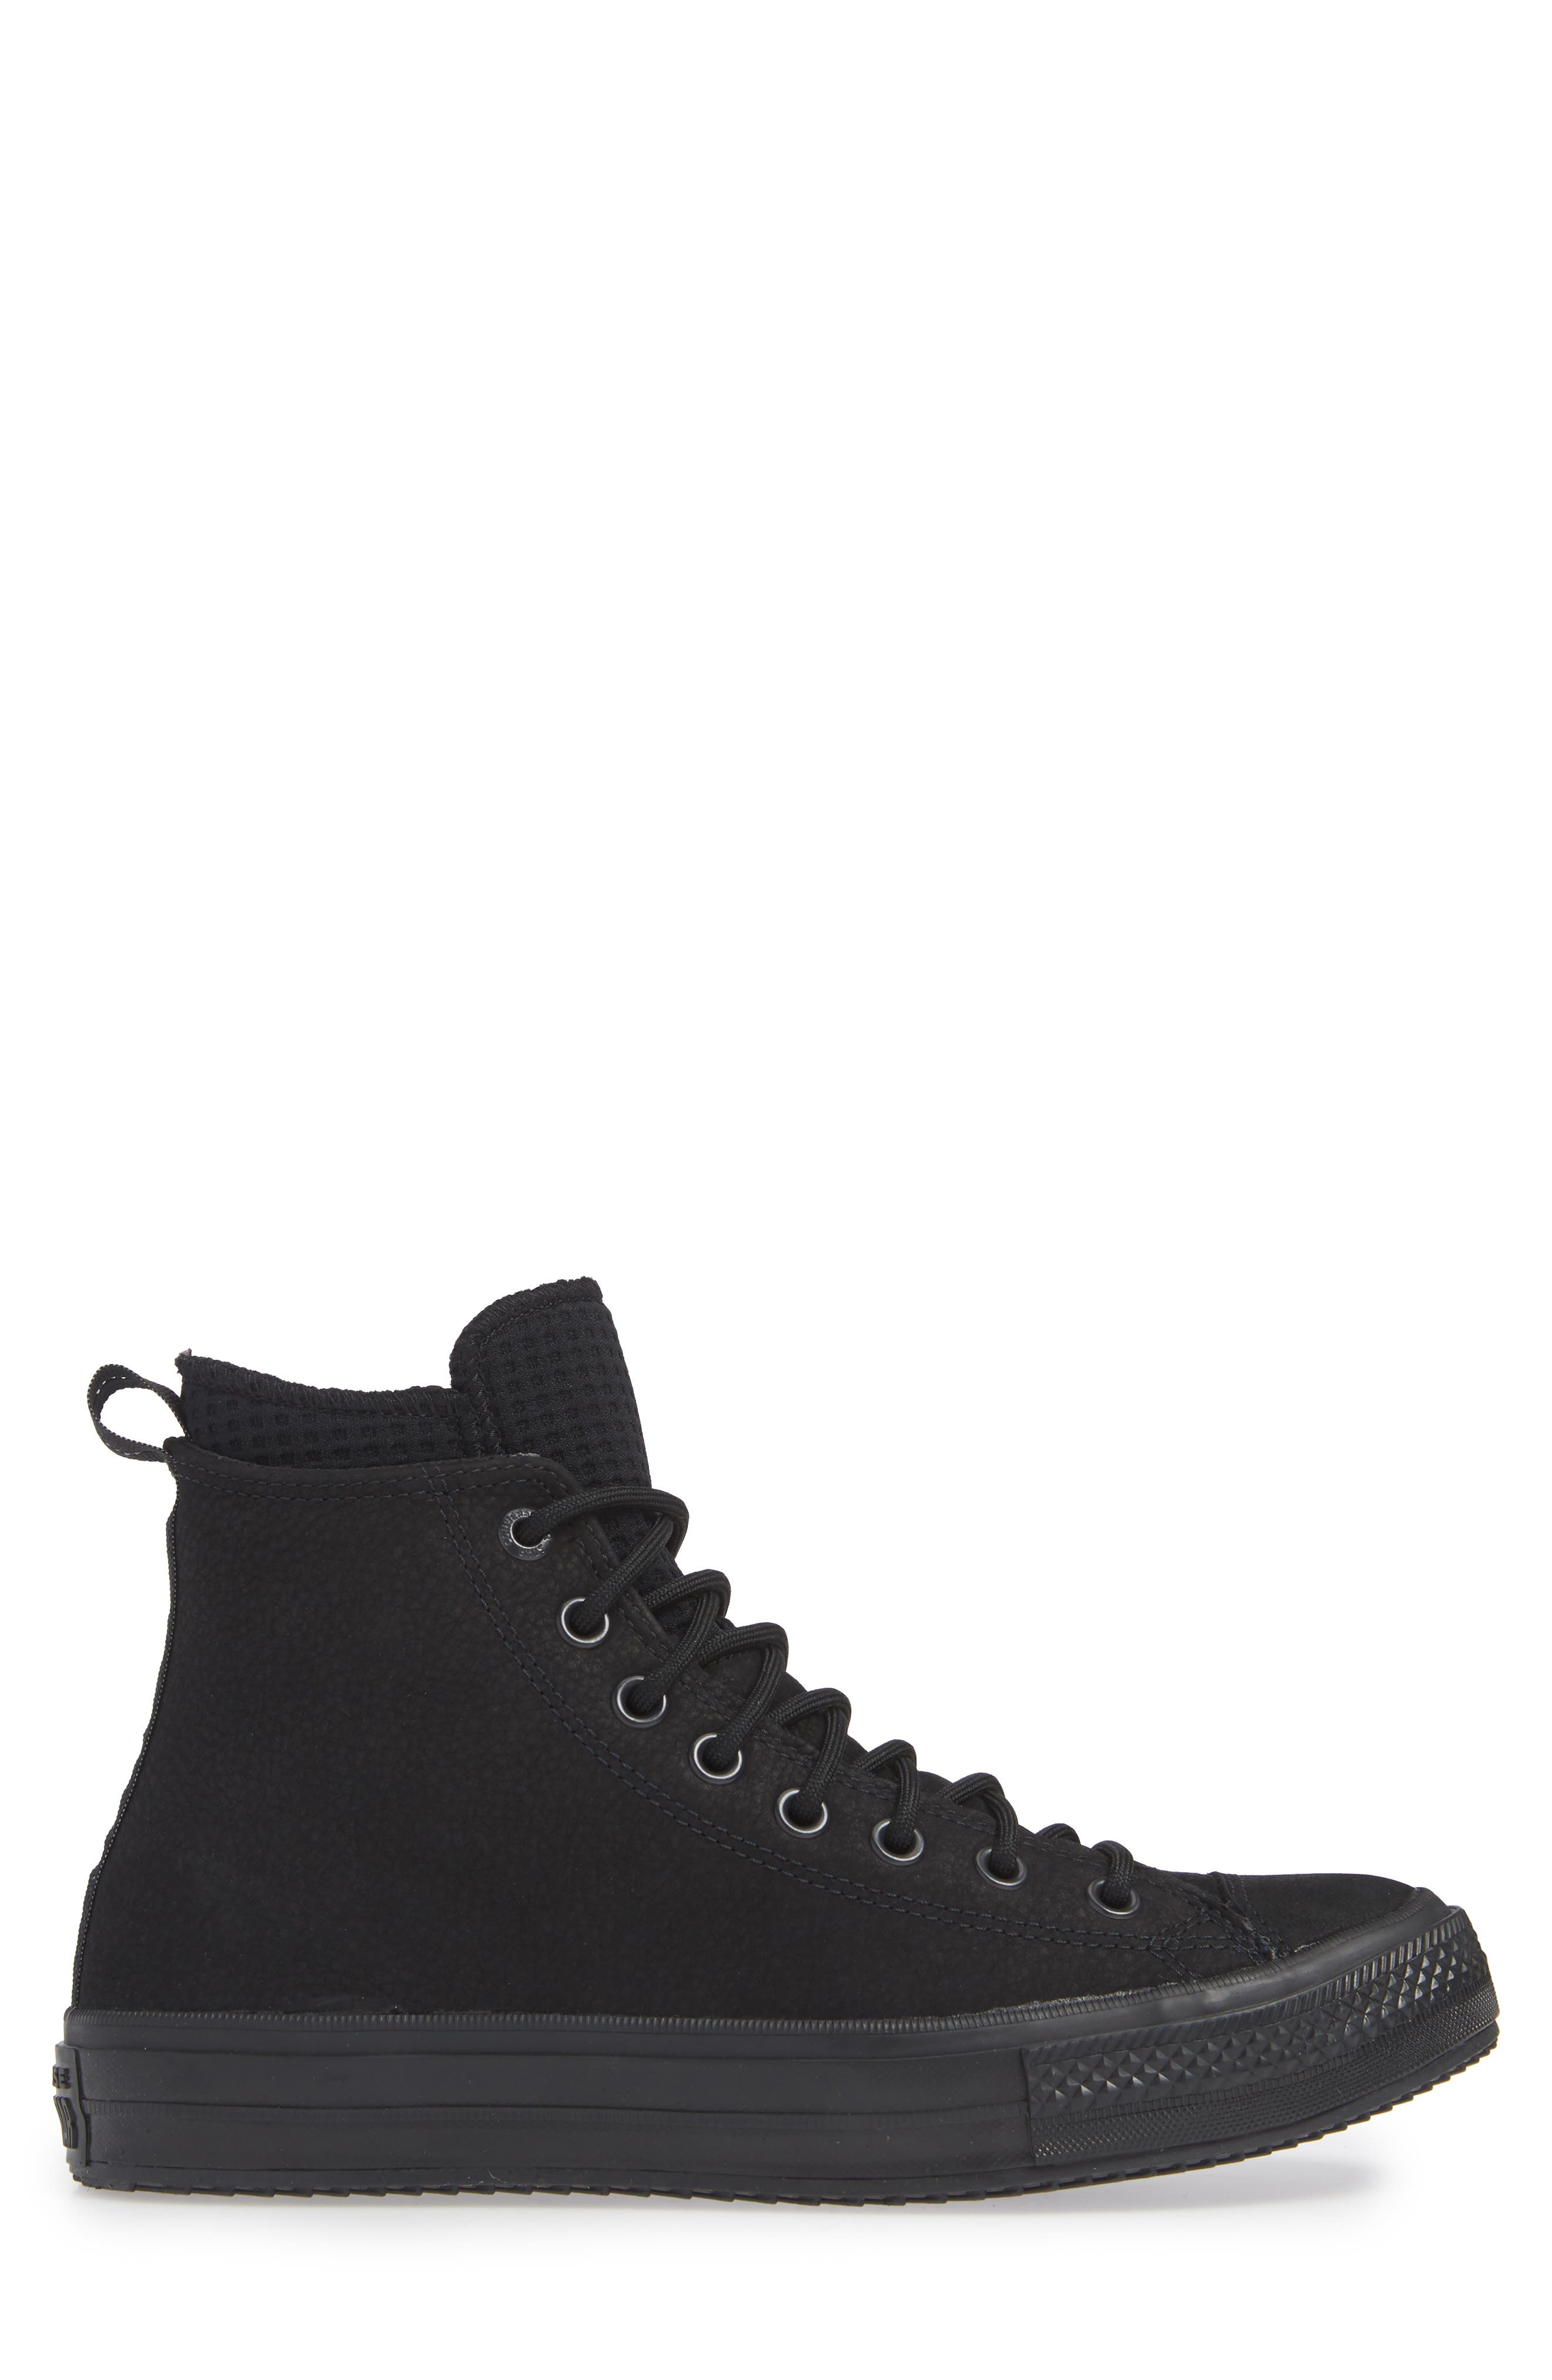 CONVERSE, Chuck Taylor<sup>®</sup> All Star<sup>®</sup> Counter Climate Waterproof Sneaker, Alternate thumbnail 3, color, BLACK/ BLACK/ BLACK